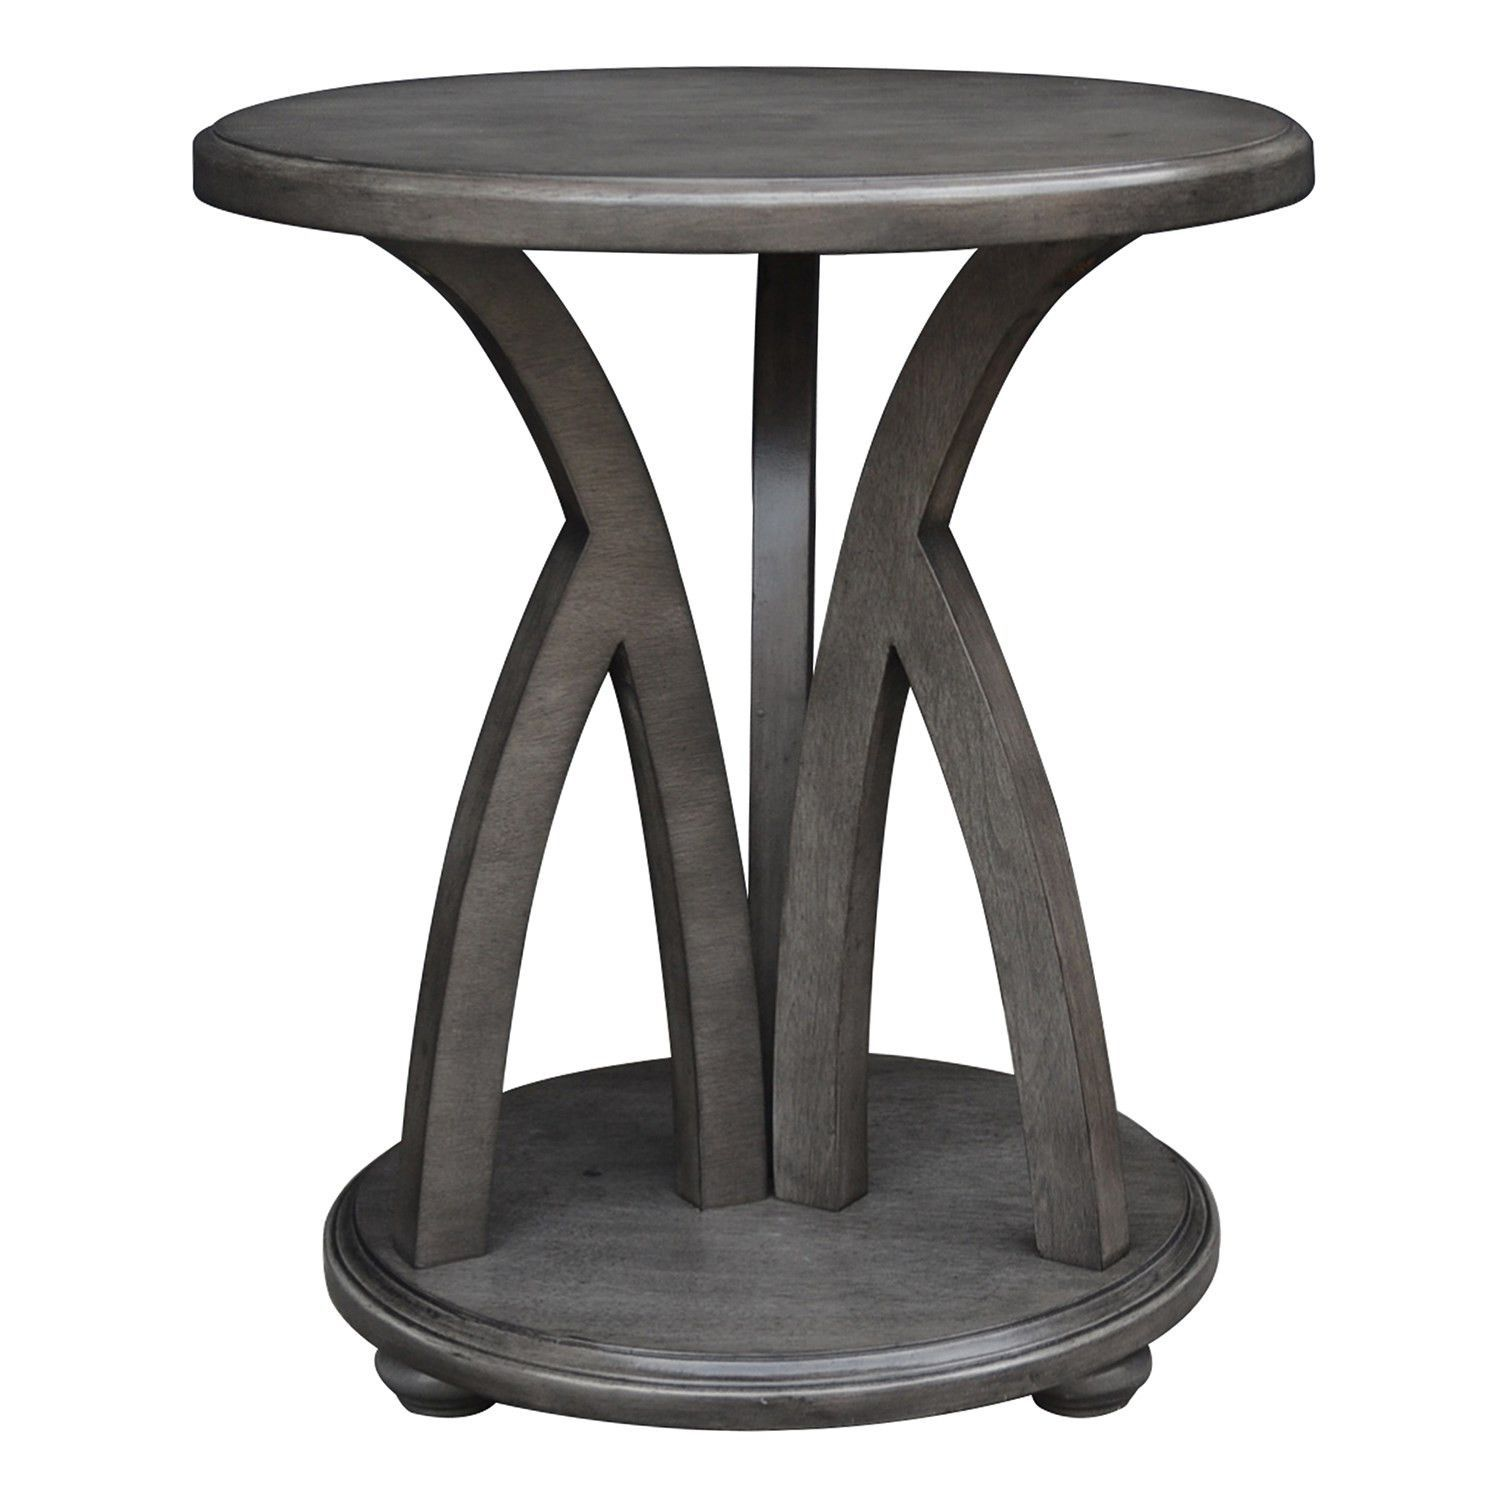 crestview brayden grey accent tables products nautical table round white wicker natural cherry end sams patio furniture small silver side magnussen glass coffee baroque dark wood